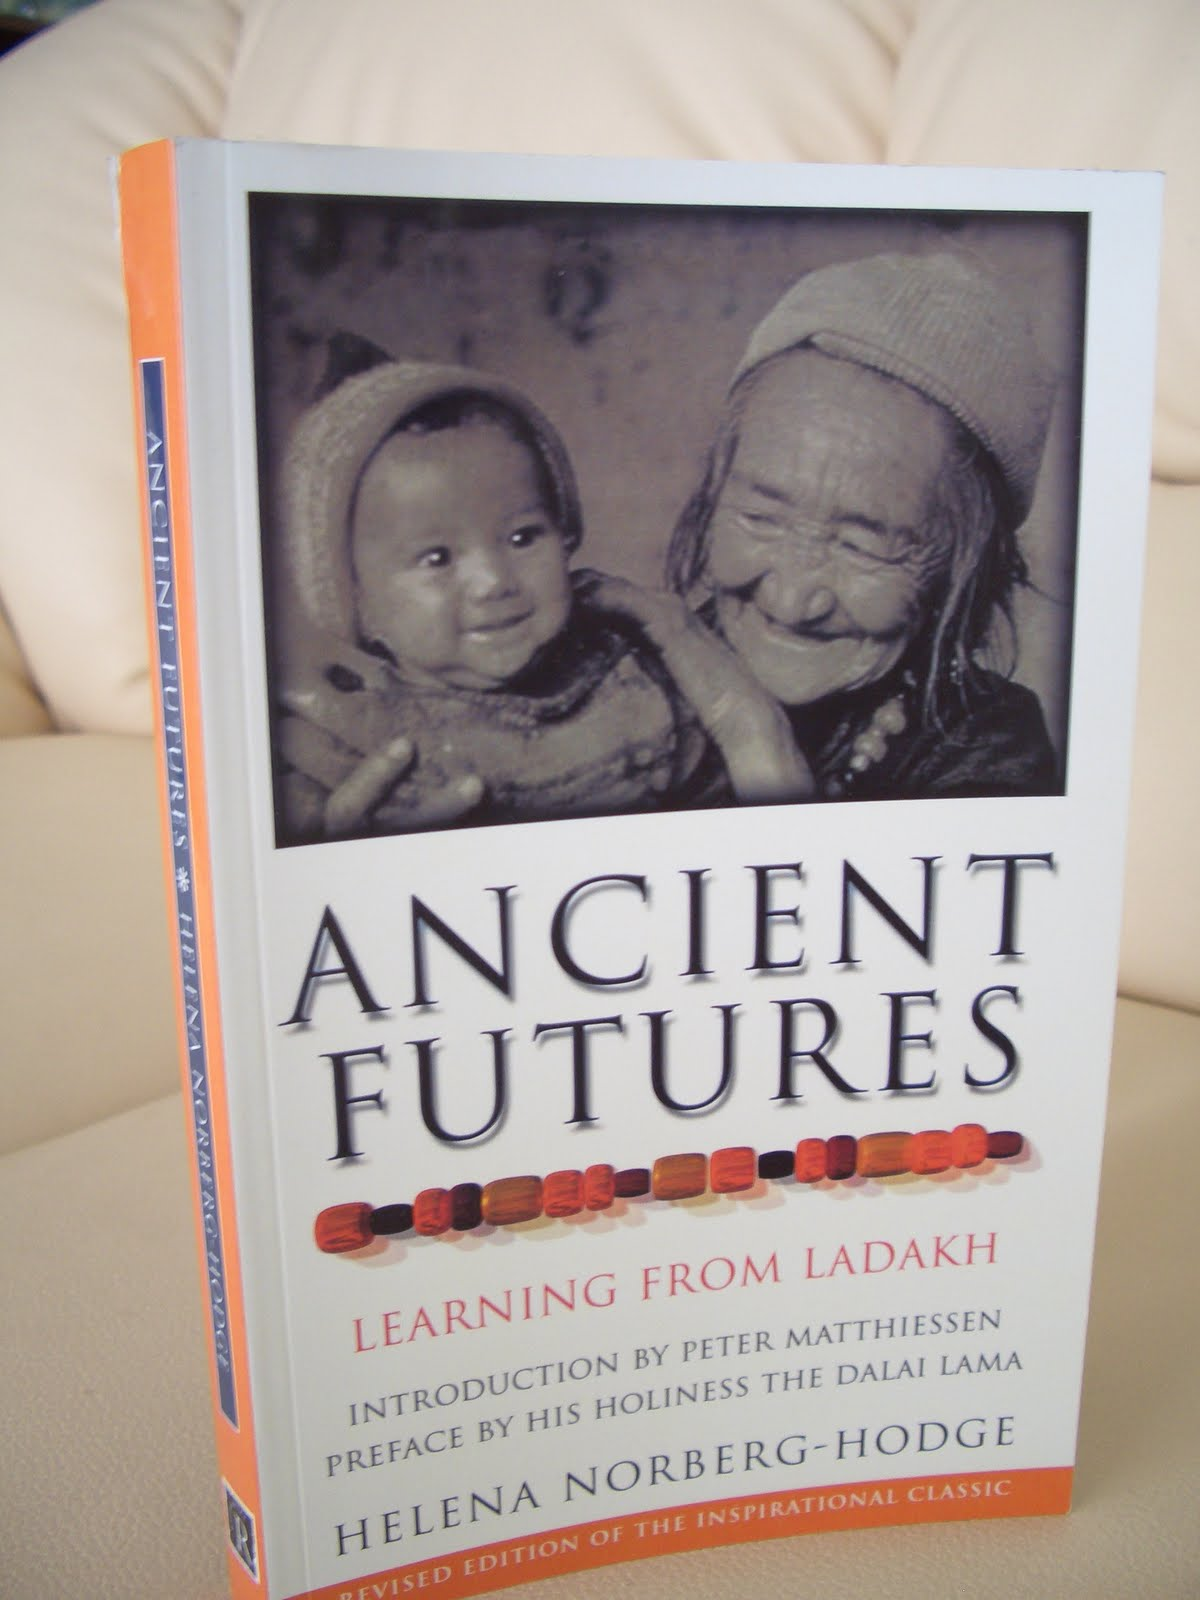 ancient futures of ladakh Read and download ancient futures lessons from ladakh for a globalizing world free ebooks in pdf format the harbinger egyptian ideas of the future life the yugas turkey a past and a.